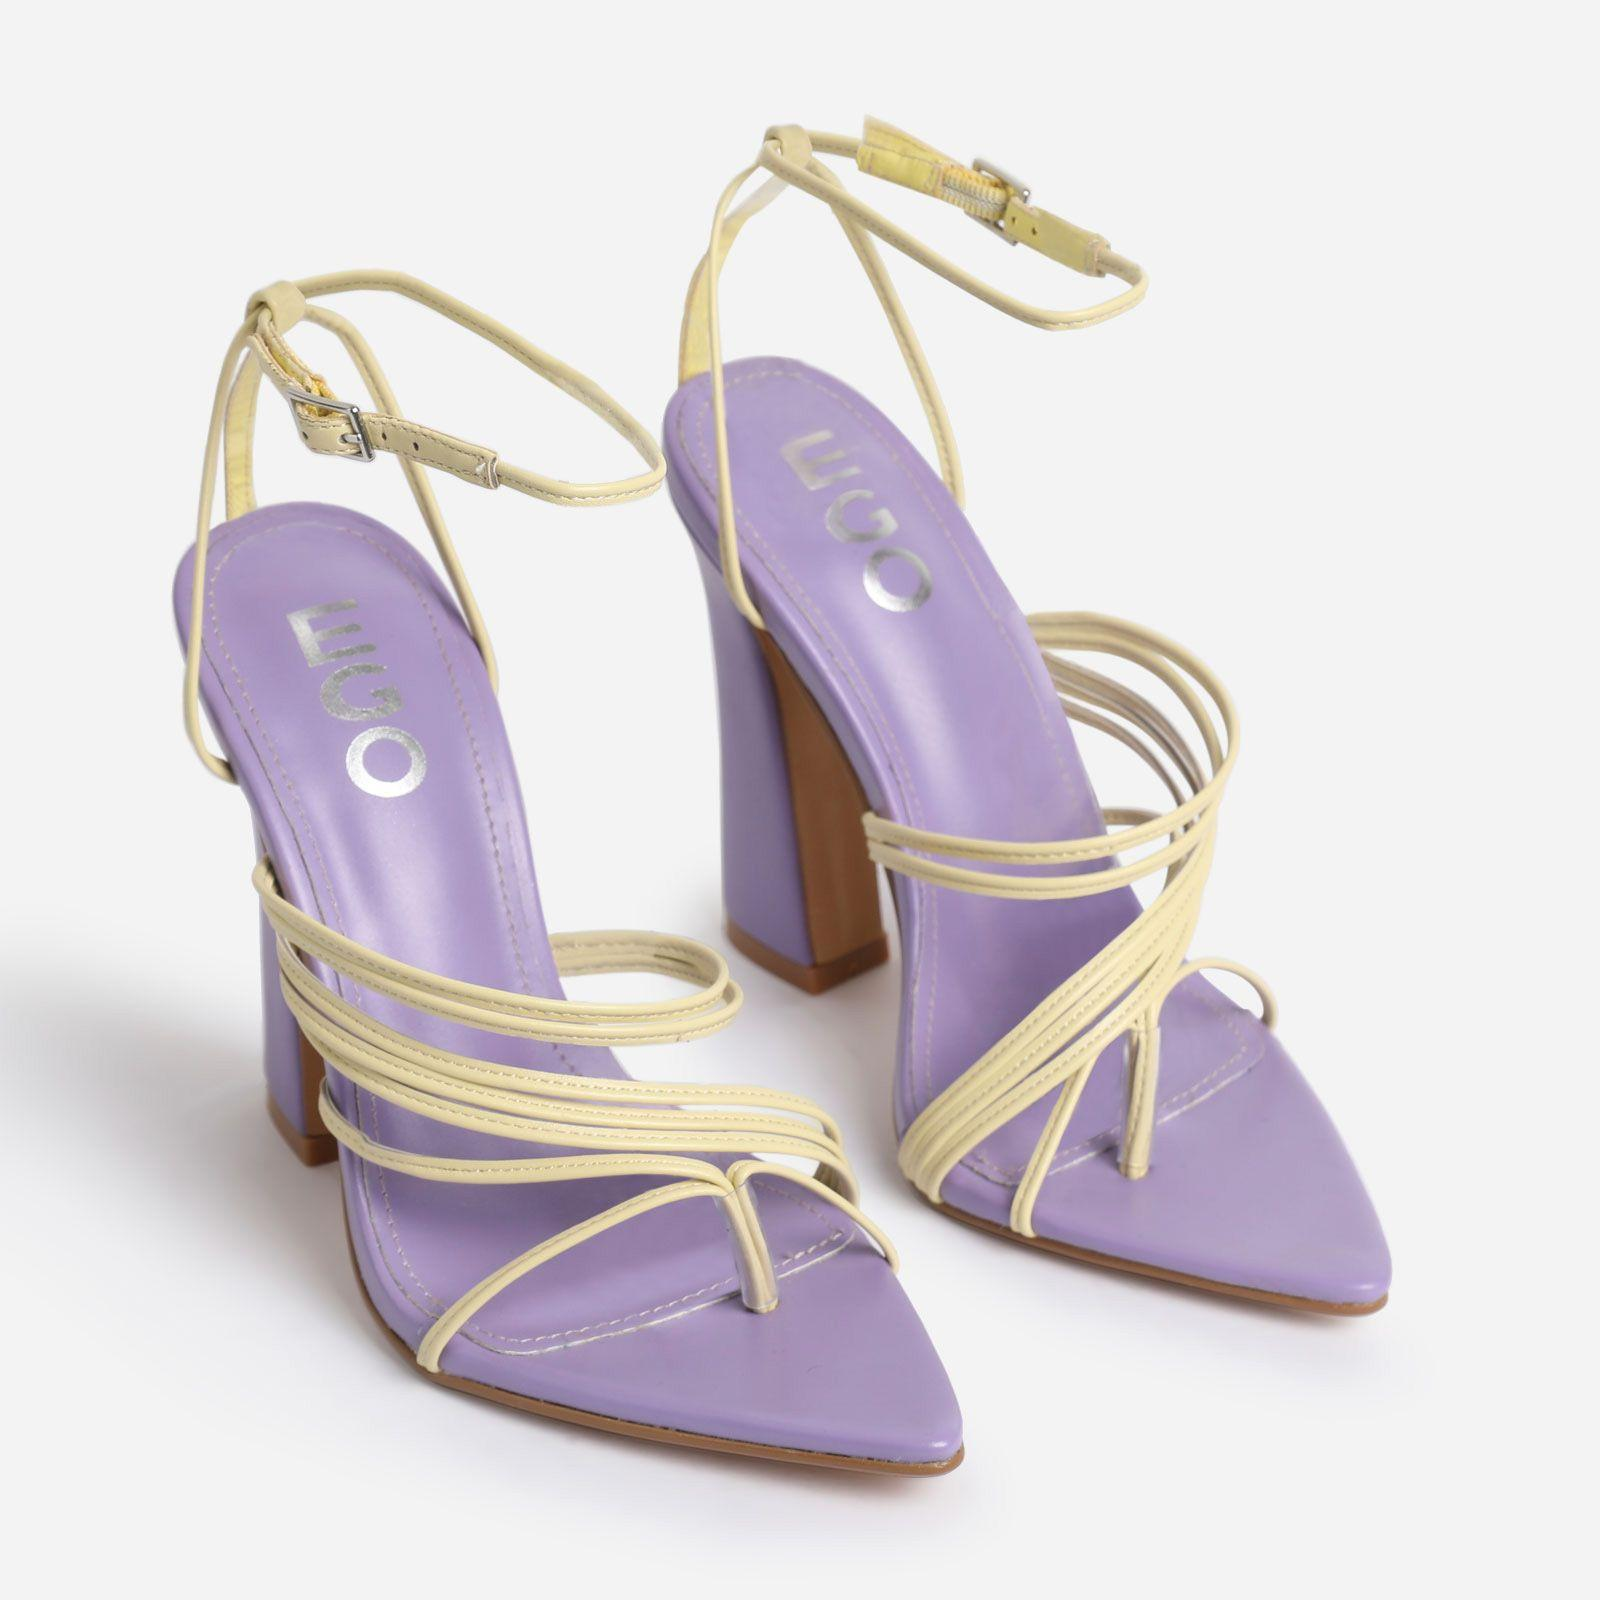 Scout Pointed Toe Yellow Strappy Flared Block Heel In Lilac Purple Faux Leather Image 2